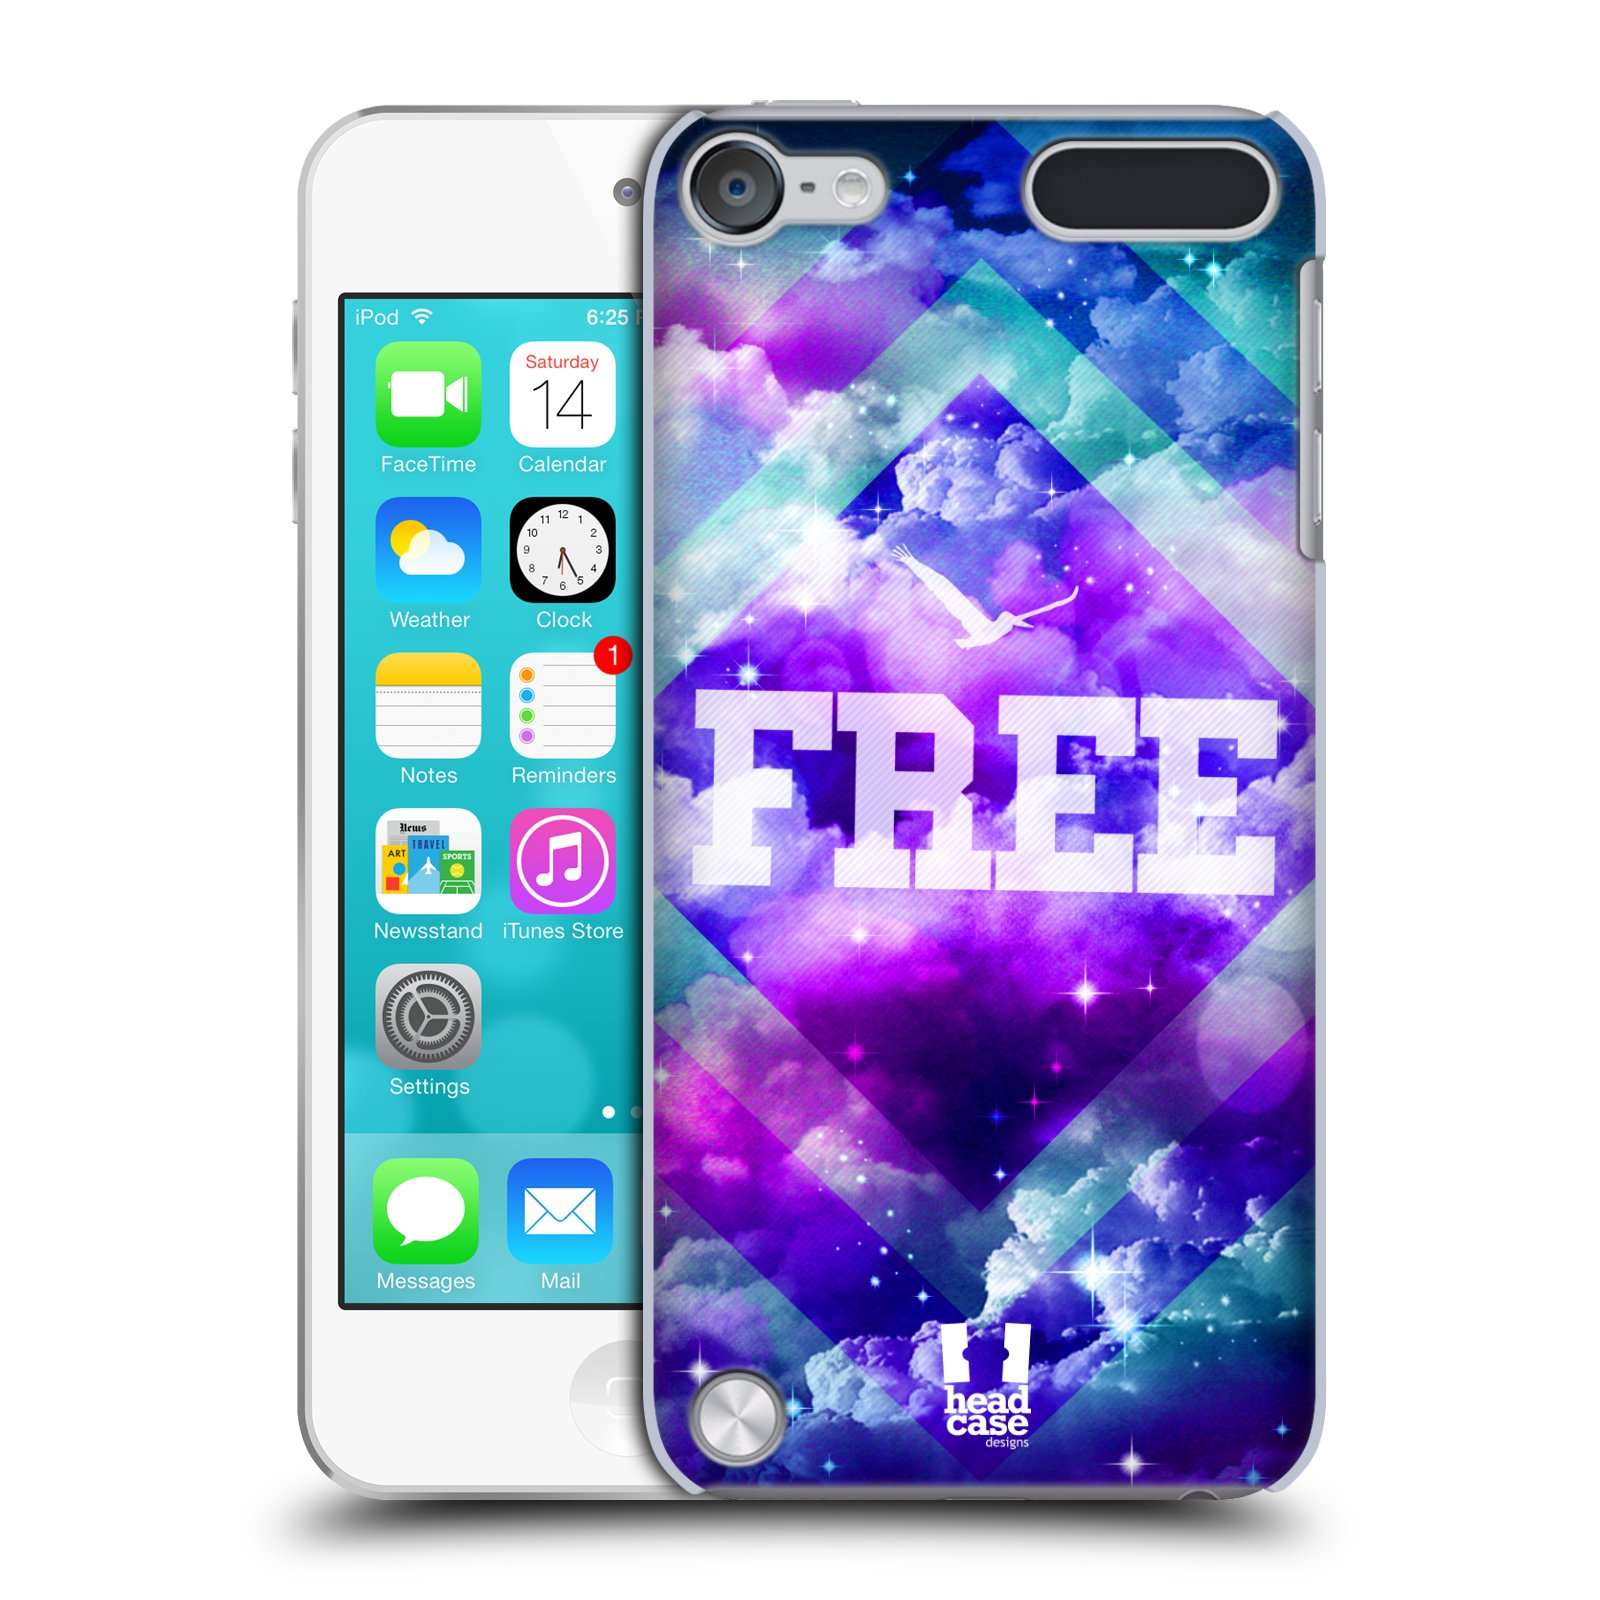 HEAD CASE DESIGNS CHROMATIC CLOUDS CASE FOR APPLE iPOD TOUCH 5G 5TH GEN